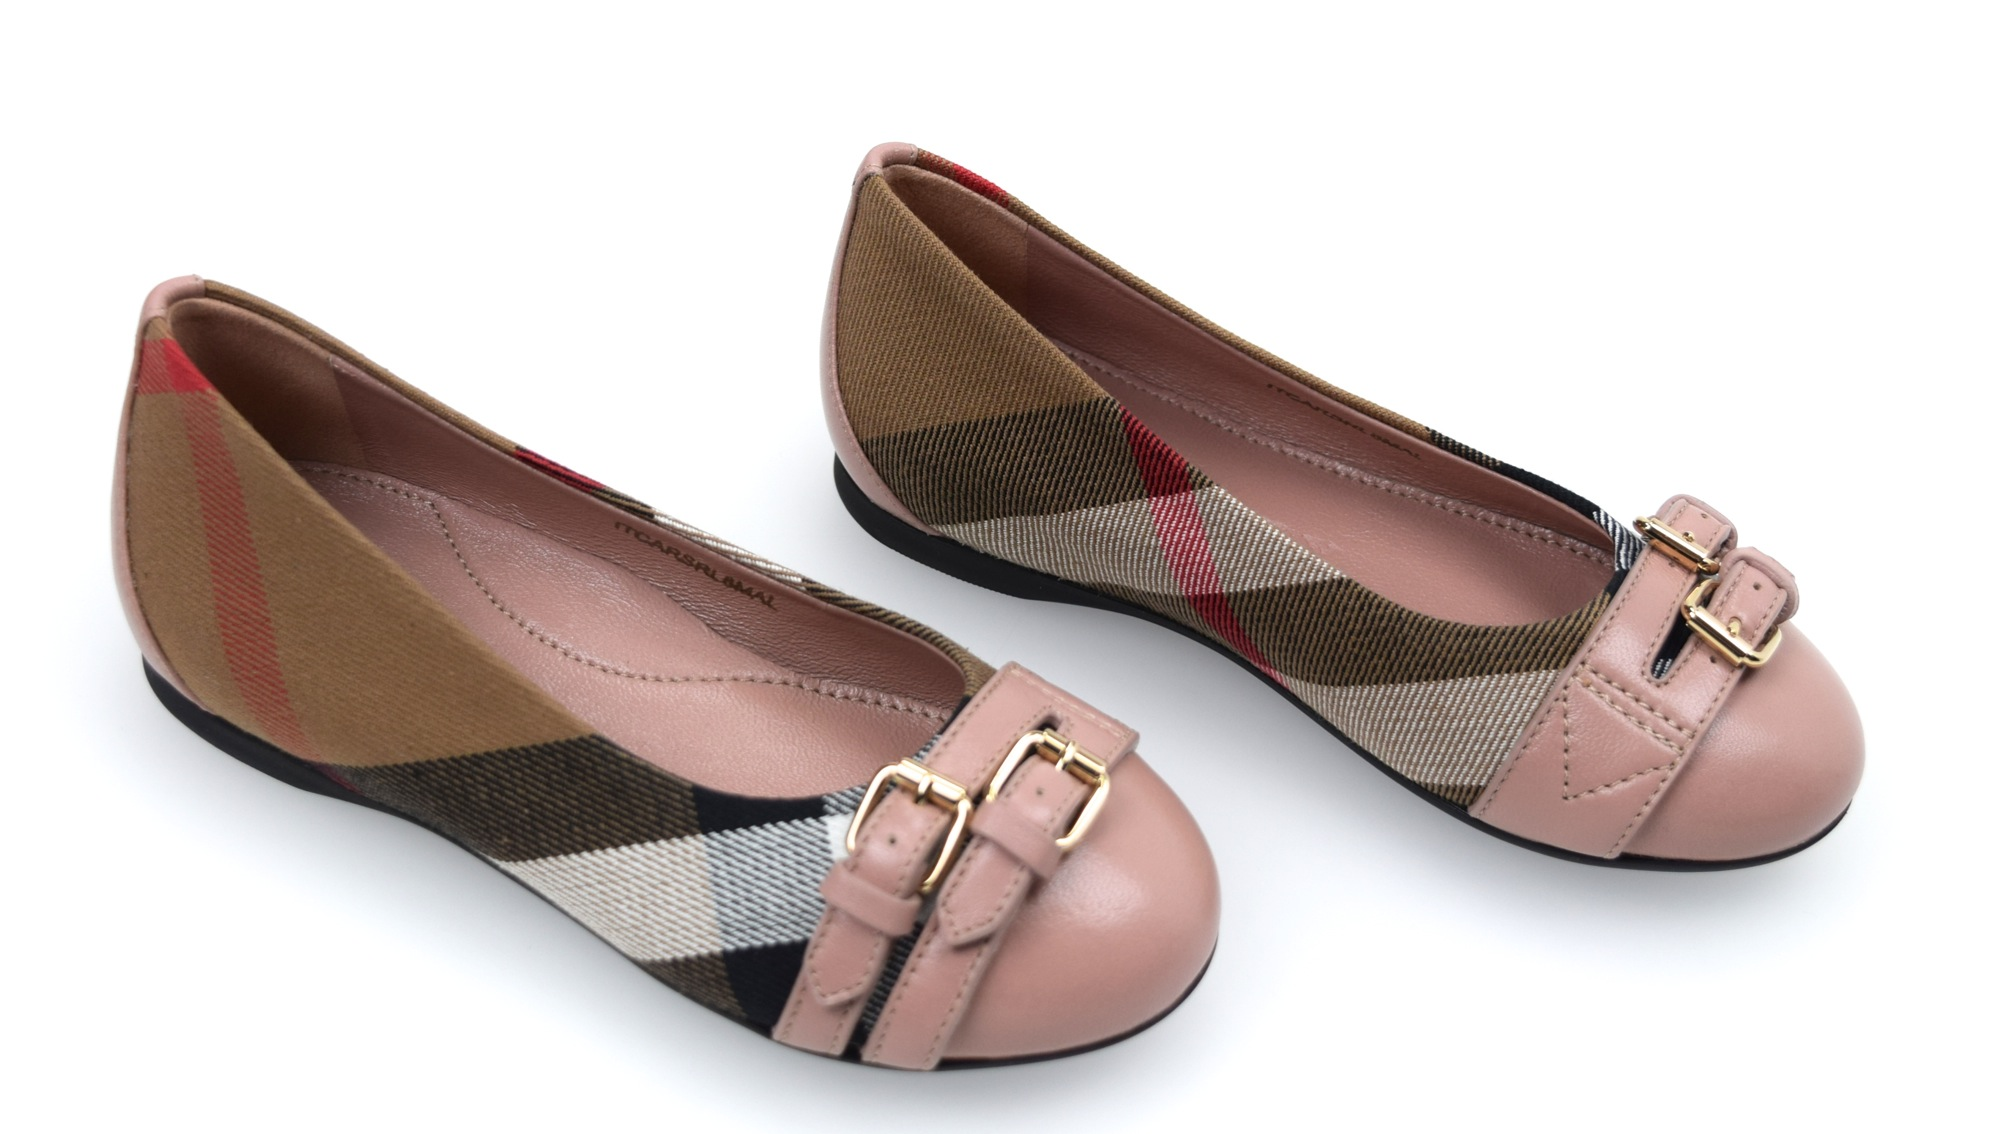 Burberry Flat Shoes Free Shipping Cheapest Price boZr51ajHc